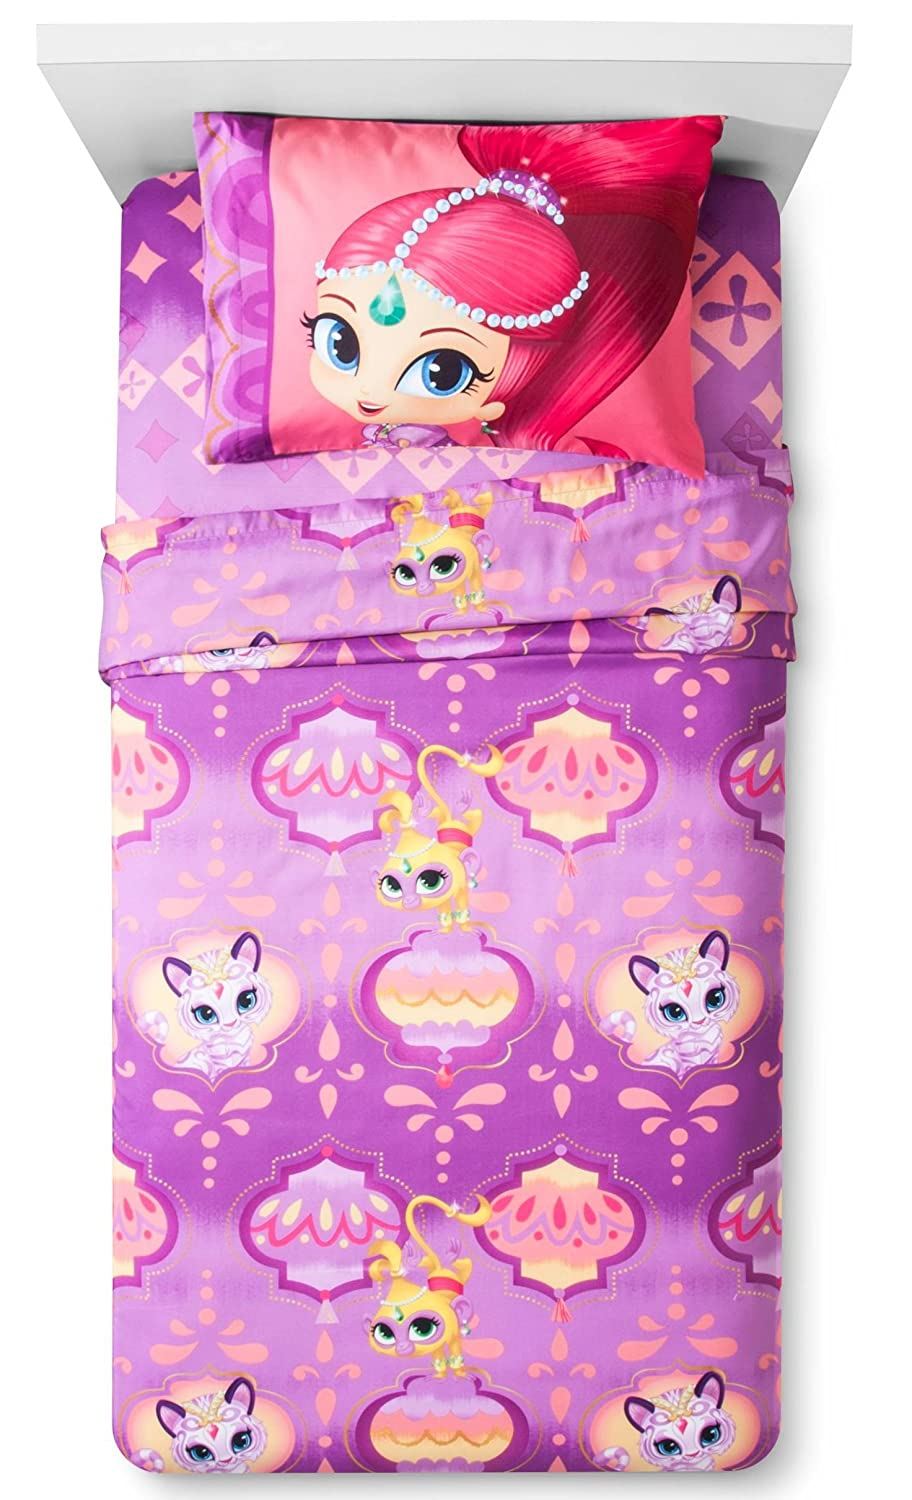 Buy Shimmer And Shine Twin Sheets By Nickelodeon Online At Low